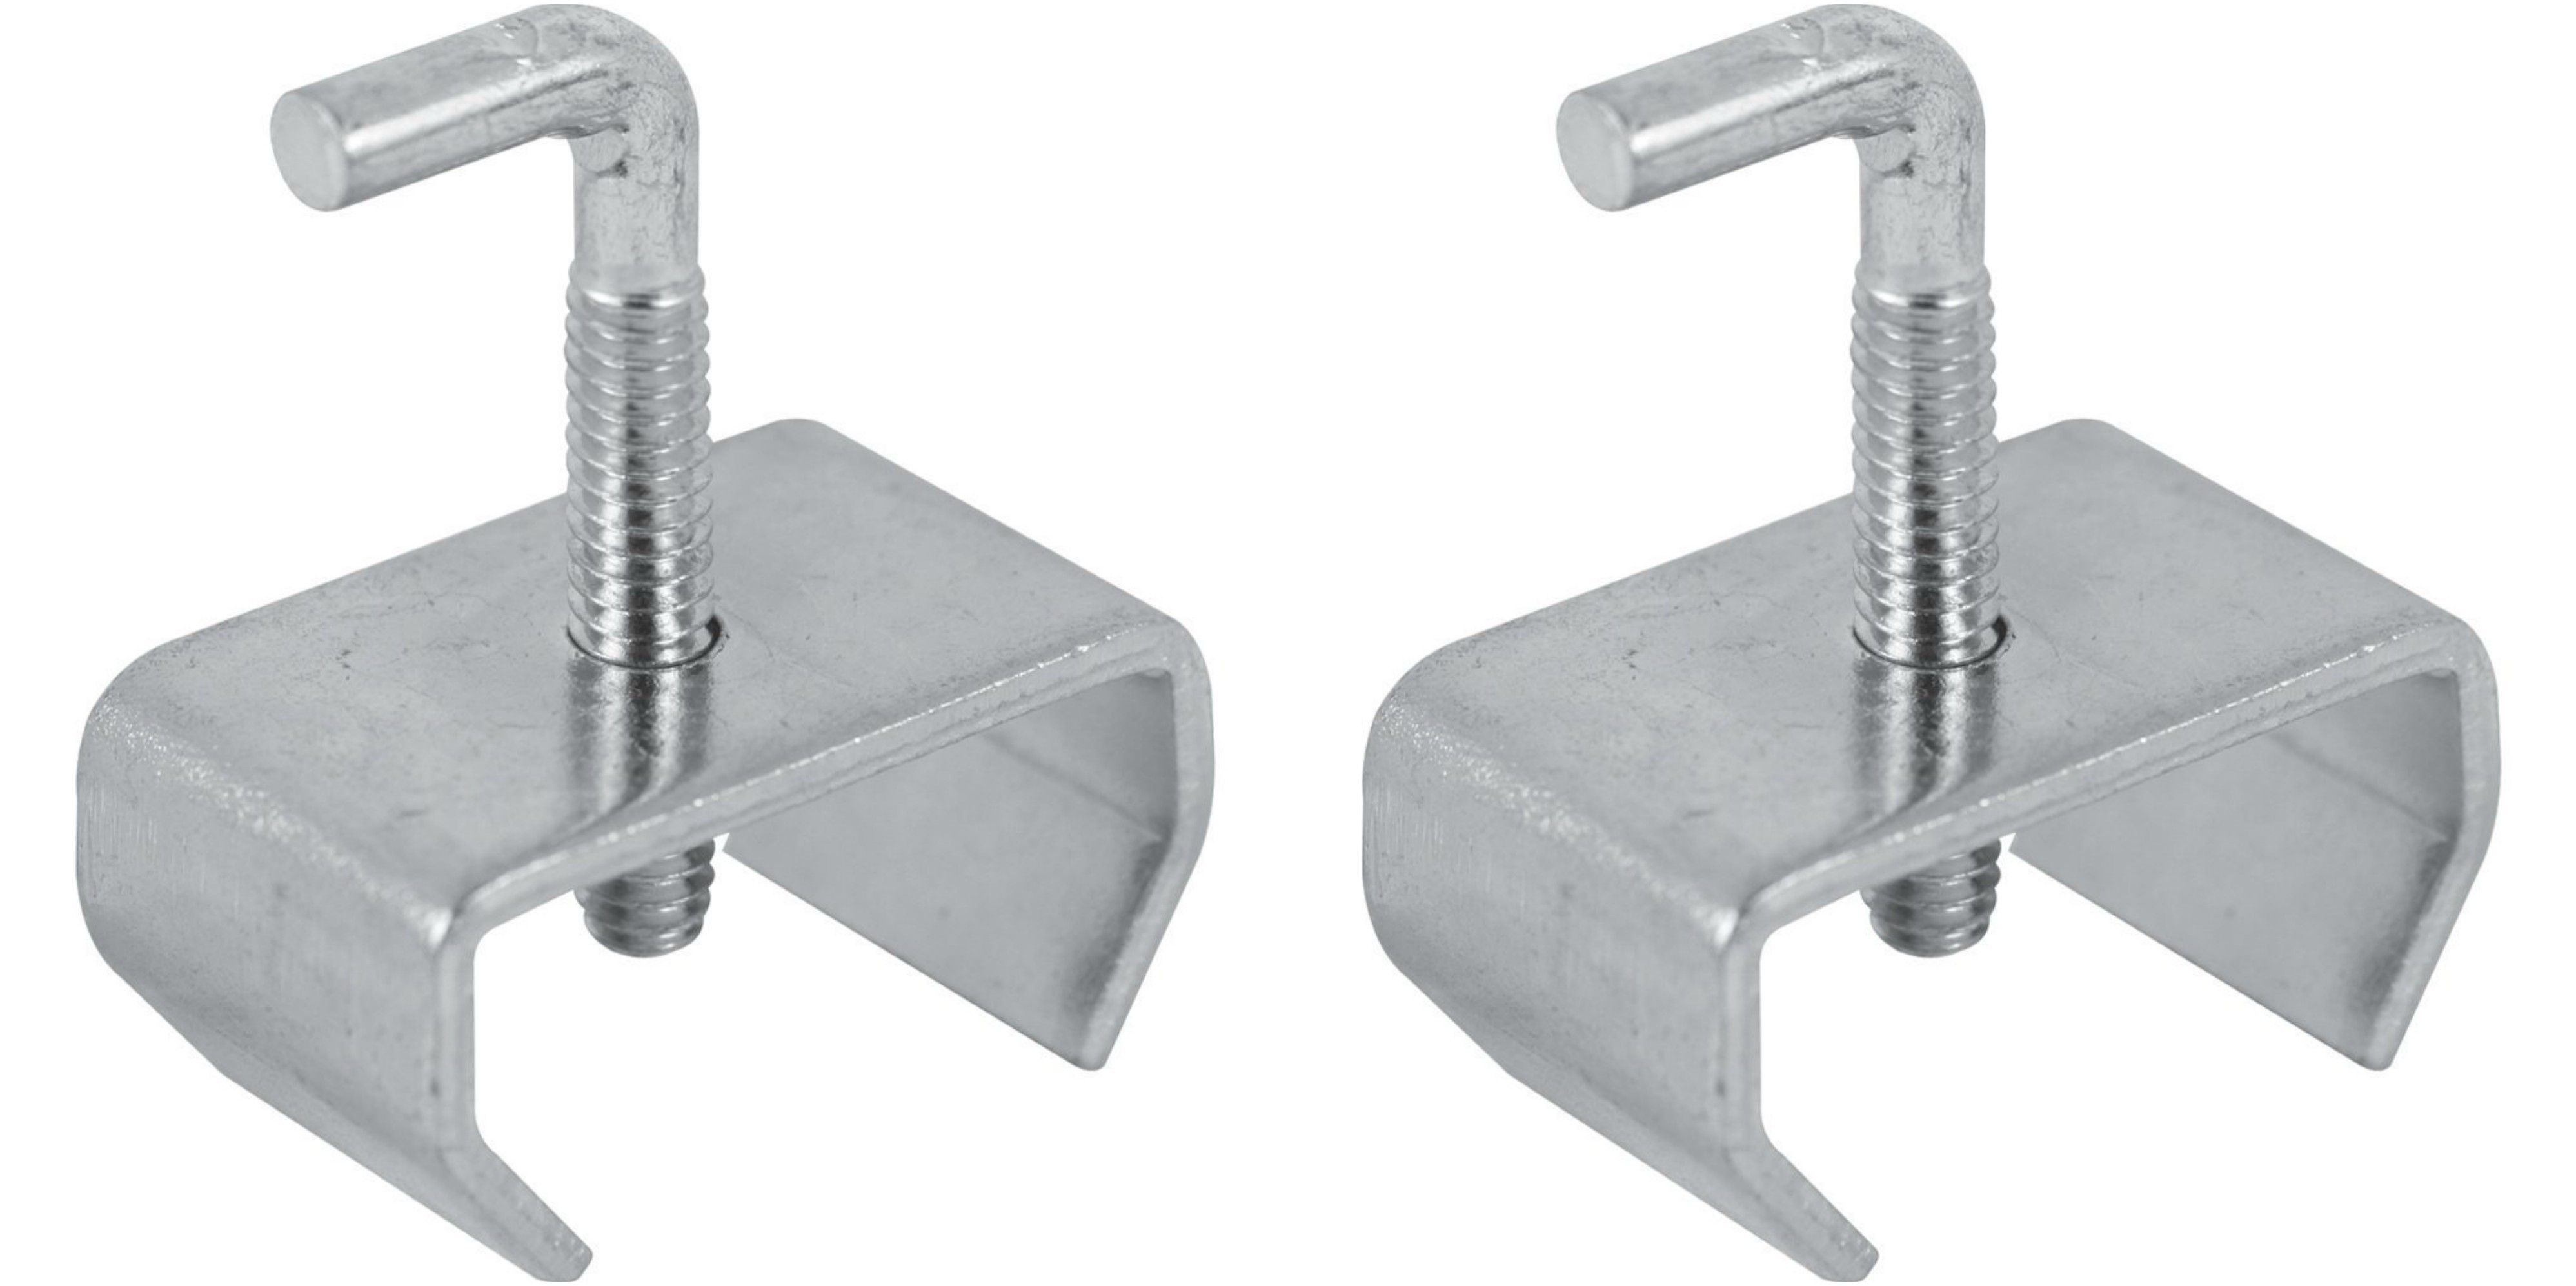 Bed Frame Rail Clamps For 114 Rails Set Of Two Bed frame